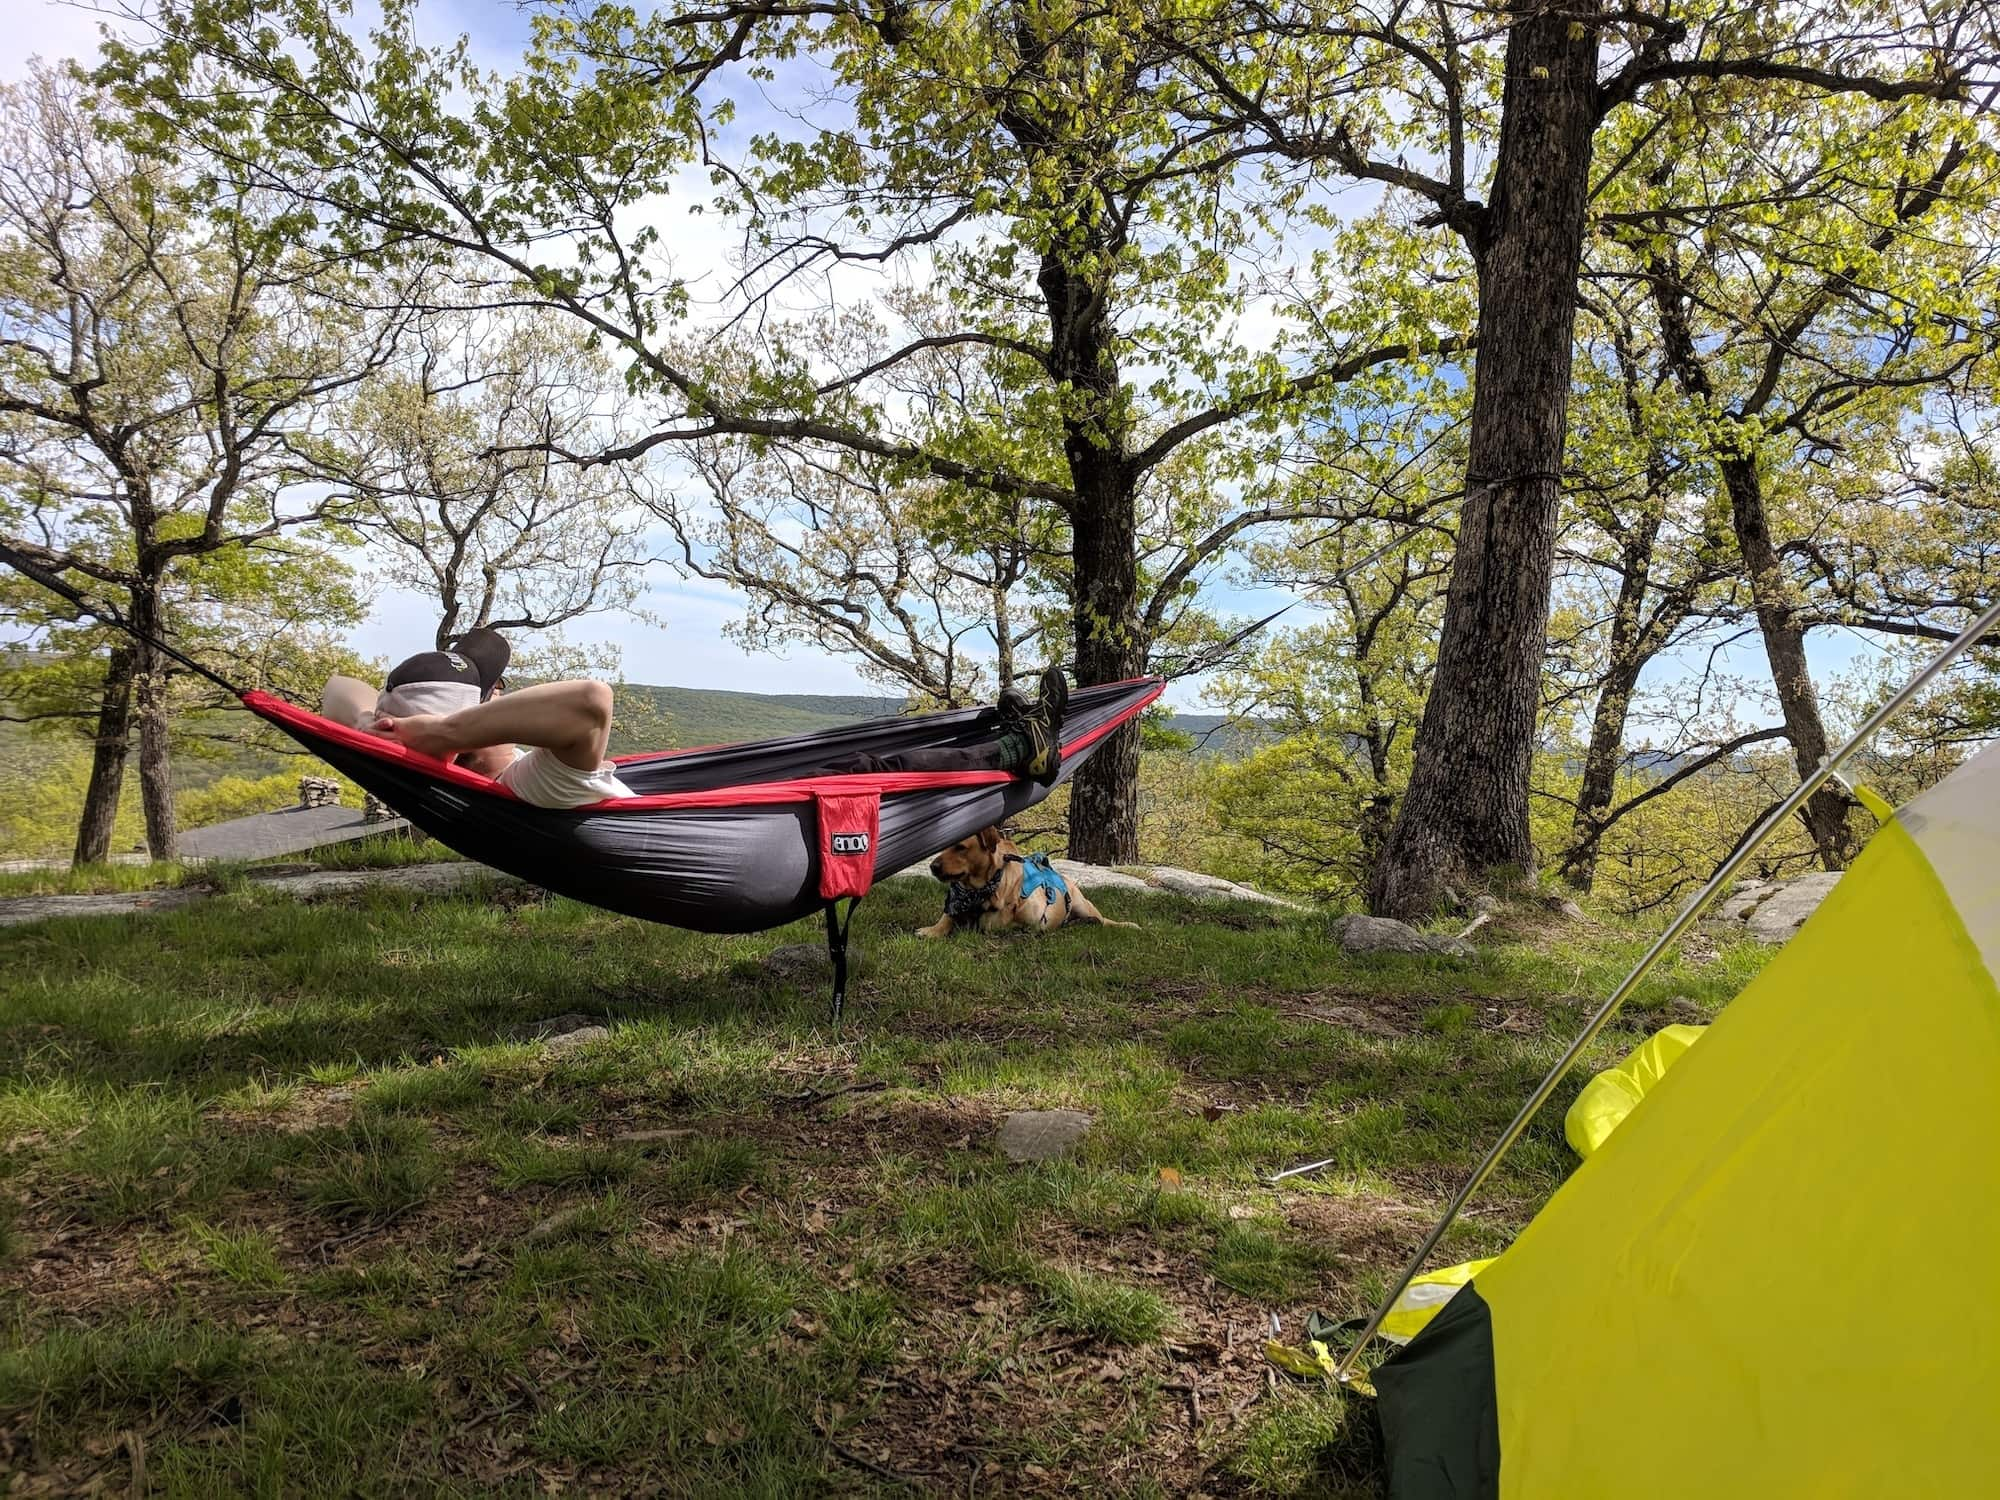 Tips and advice on how to successfully introduce your partner to camping for the first time.